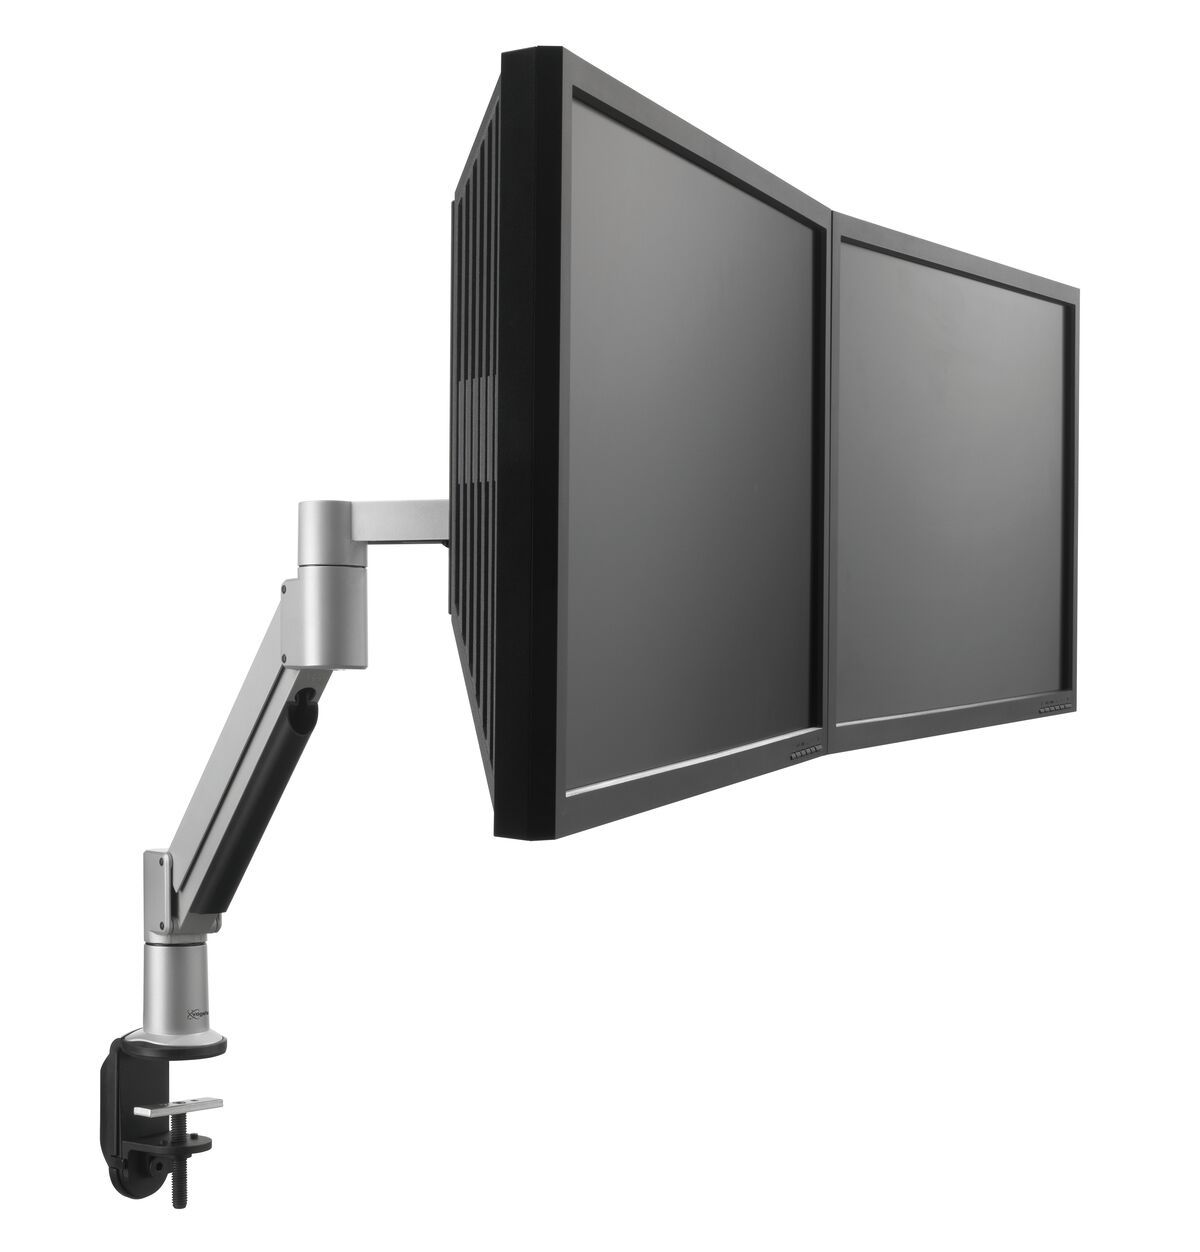 Vogel's PFA 9102 Monitor arm dual adapter - Application